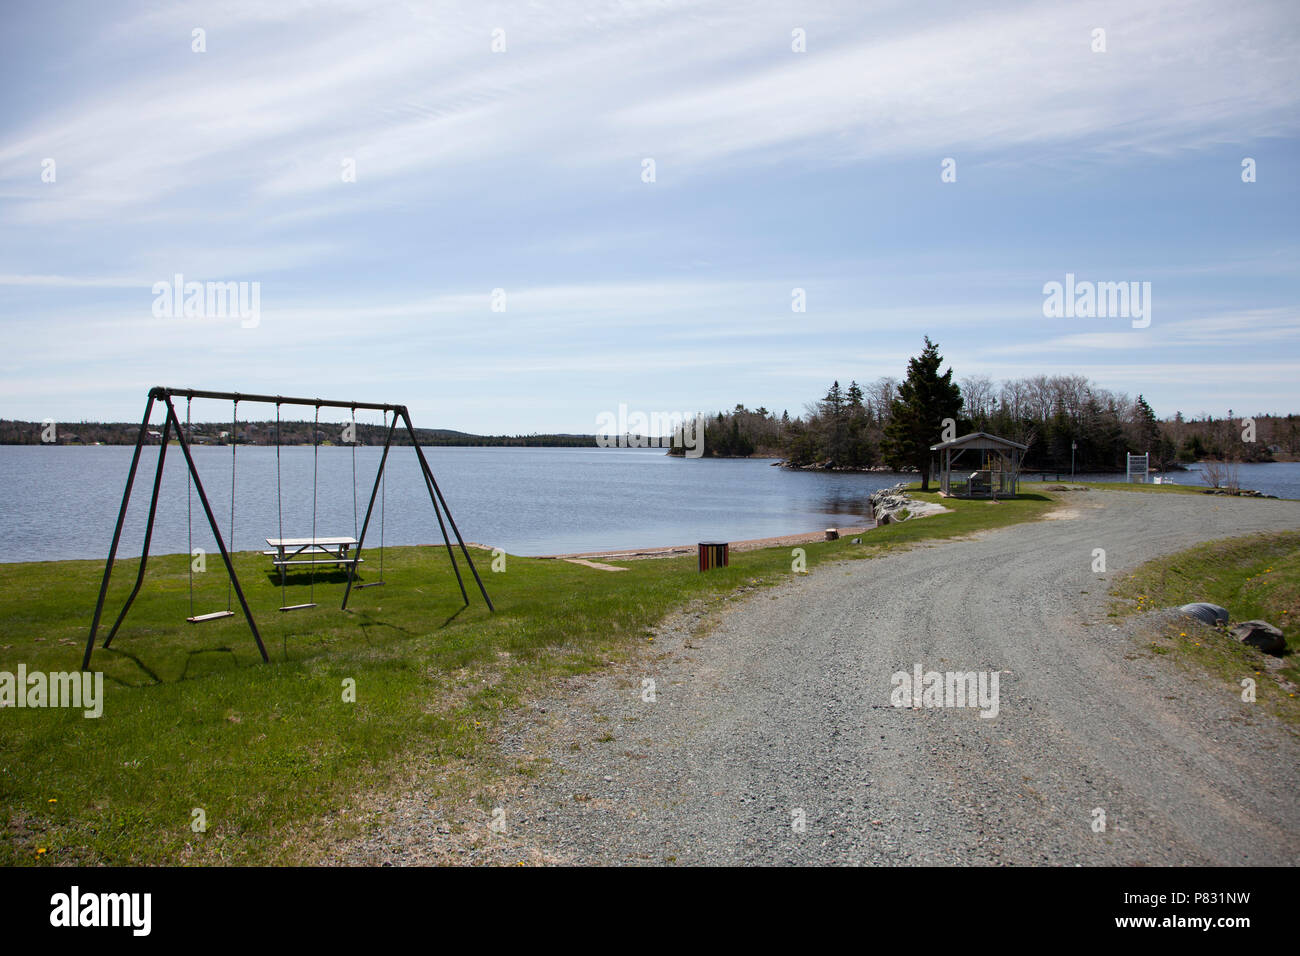 A Little Dirt Road Leads Past A Small Beach With Picnic Table And